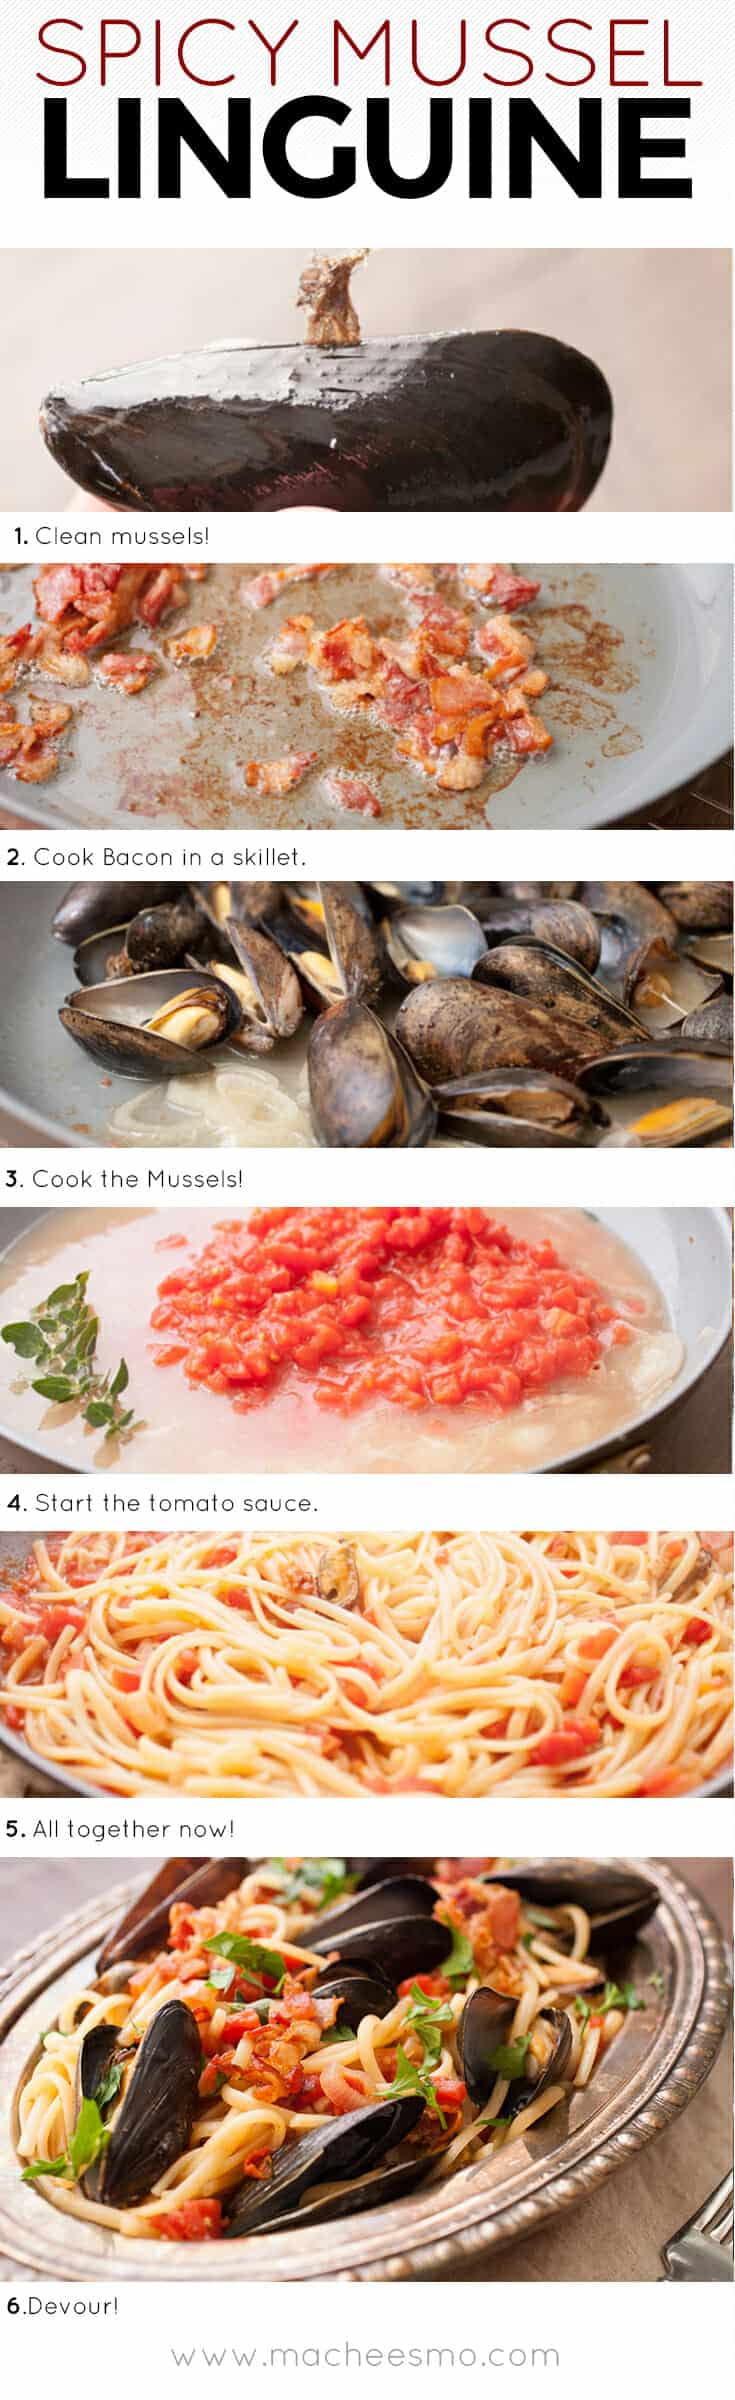 Spicy Mussel Linguine: This is a classic Italian dish packed with fresh mussels plus a light tomato sauce and crispy bacon. Surprisingly easy to make and so delicious. Don't forget the bread! | macheesmo.com